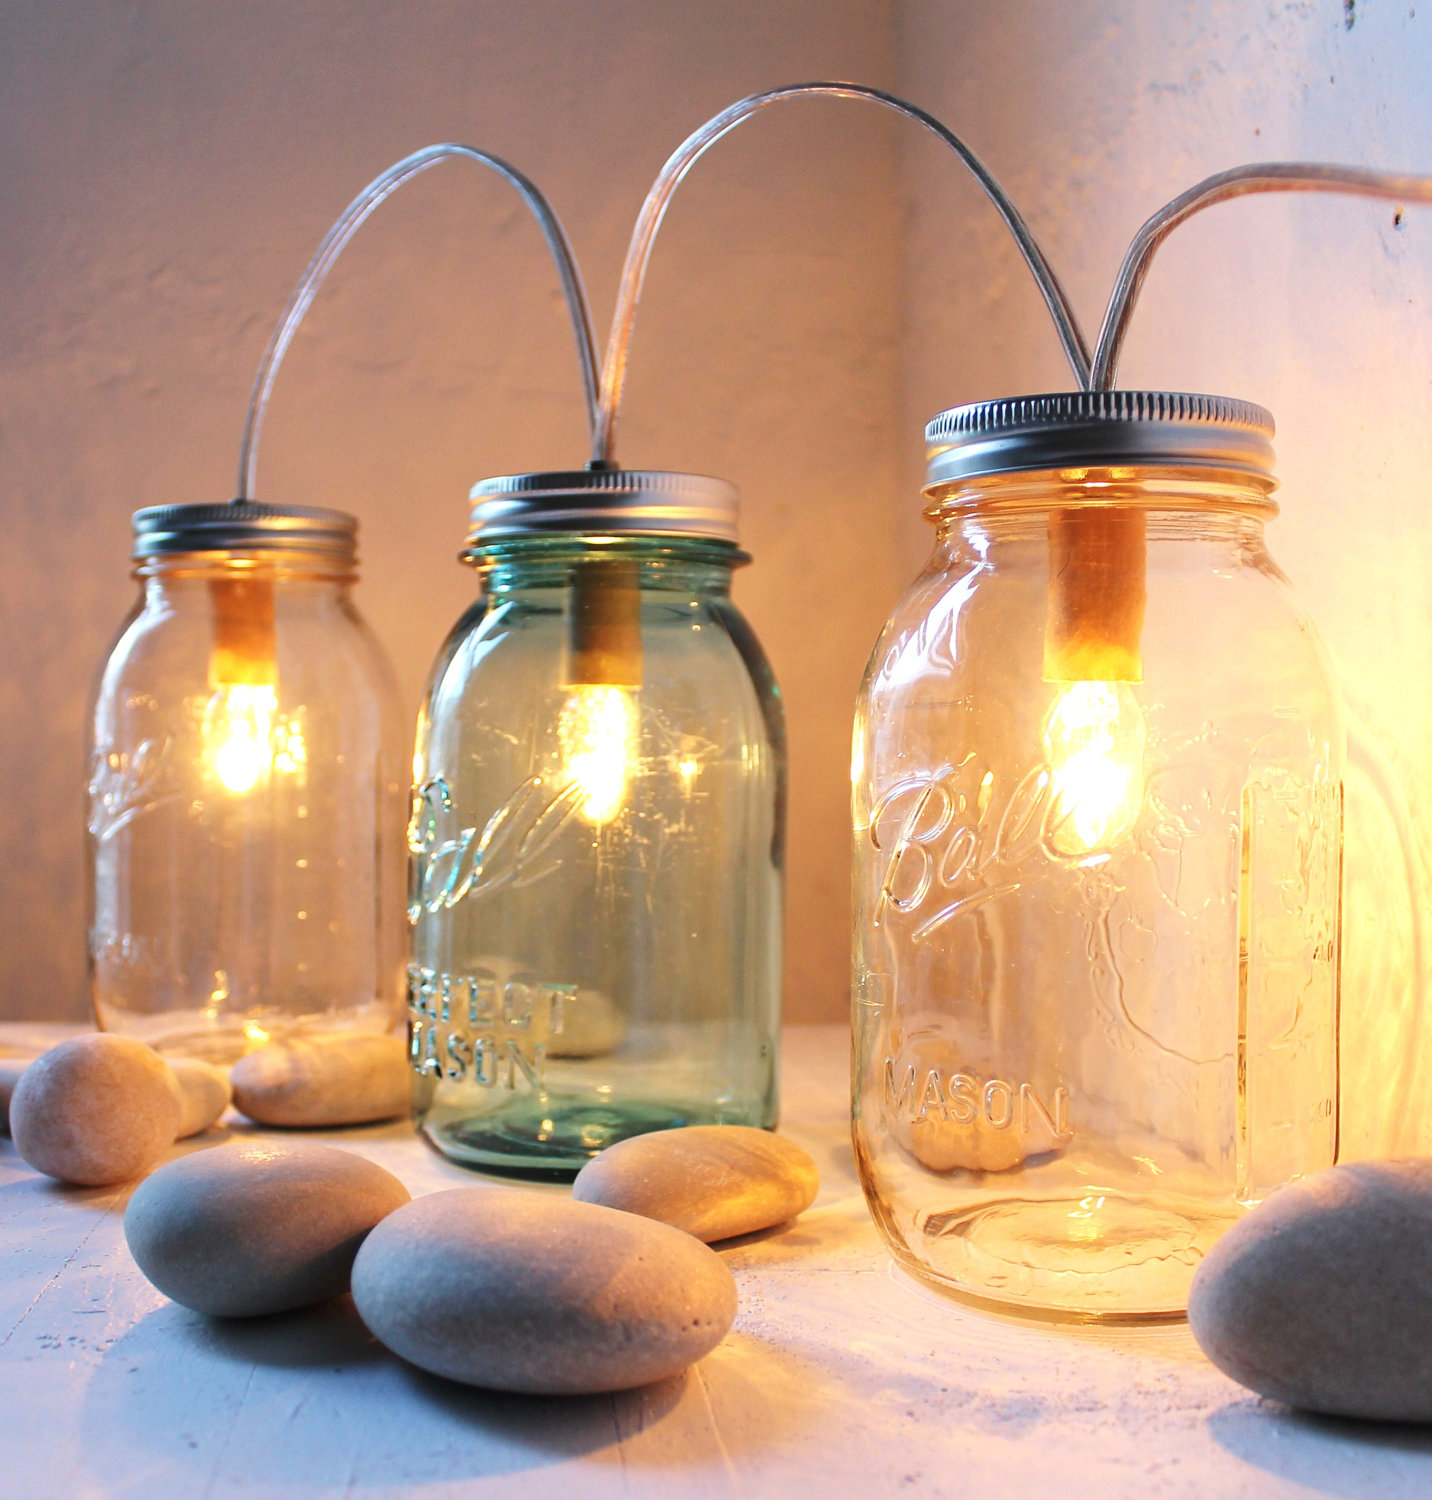 16 Cool Handmade Mason Jar Crafts That You Can DIY